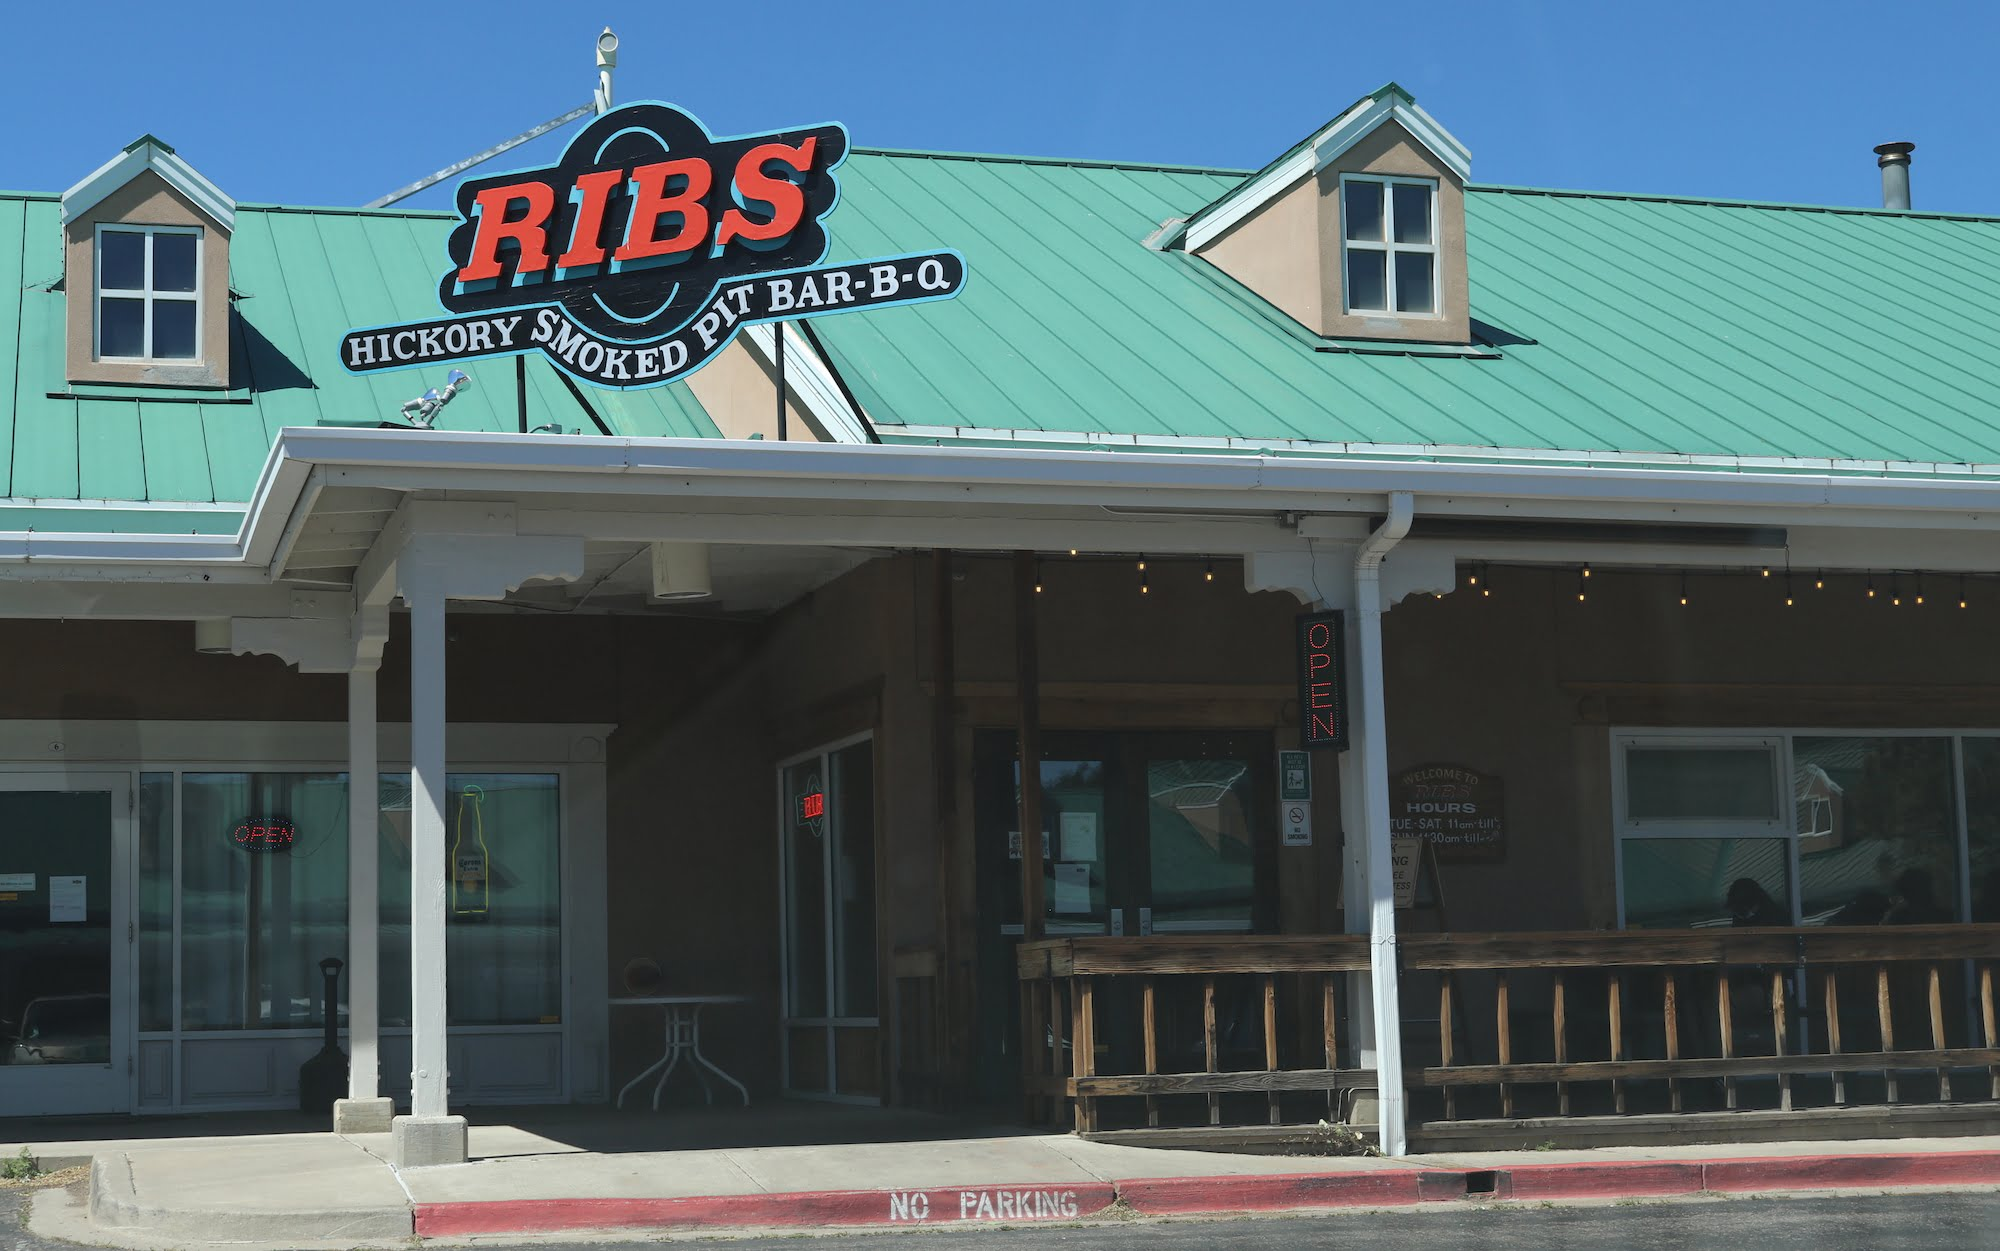 Restaurants thankful for community support